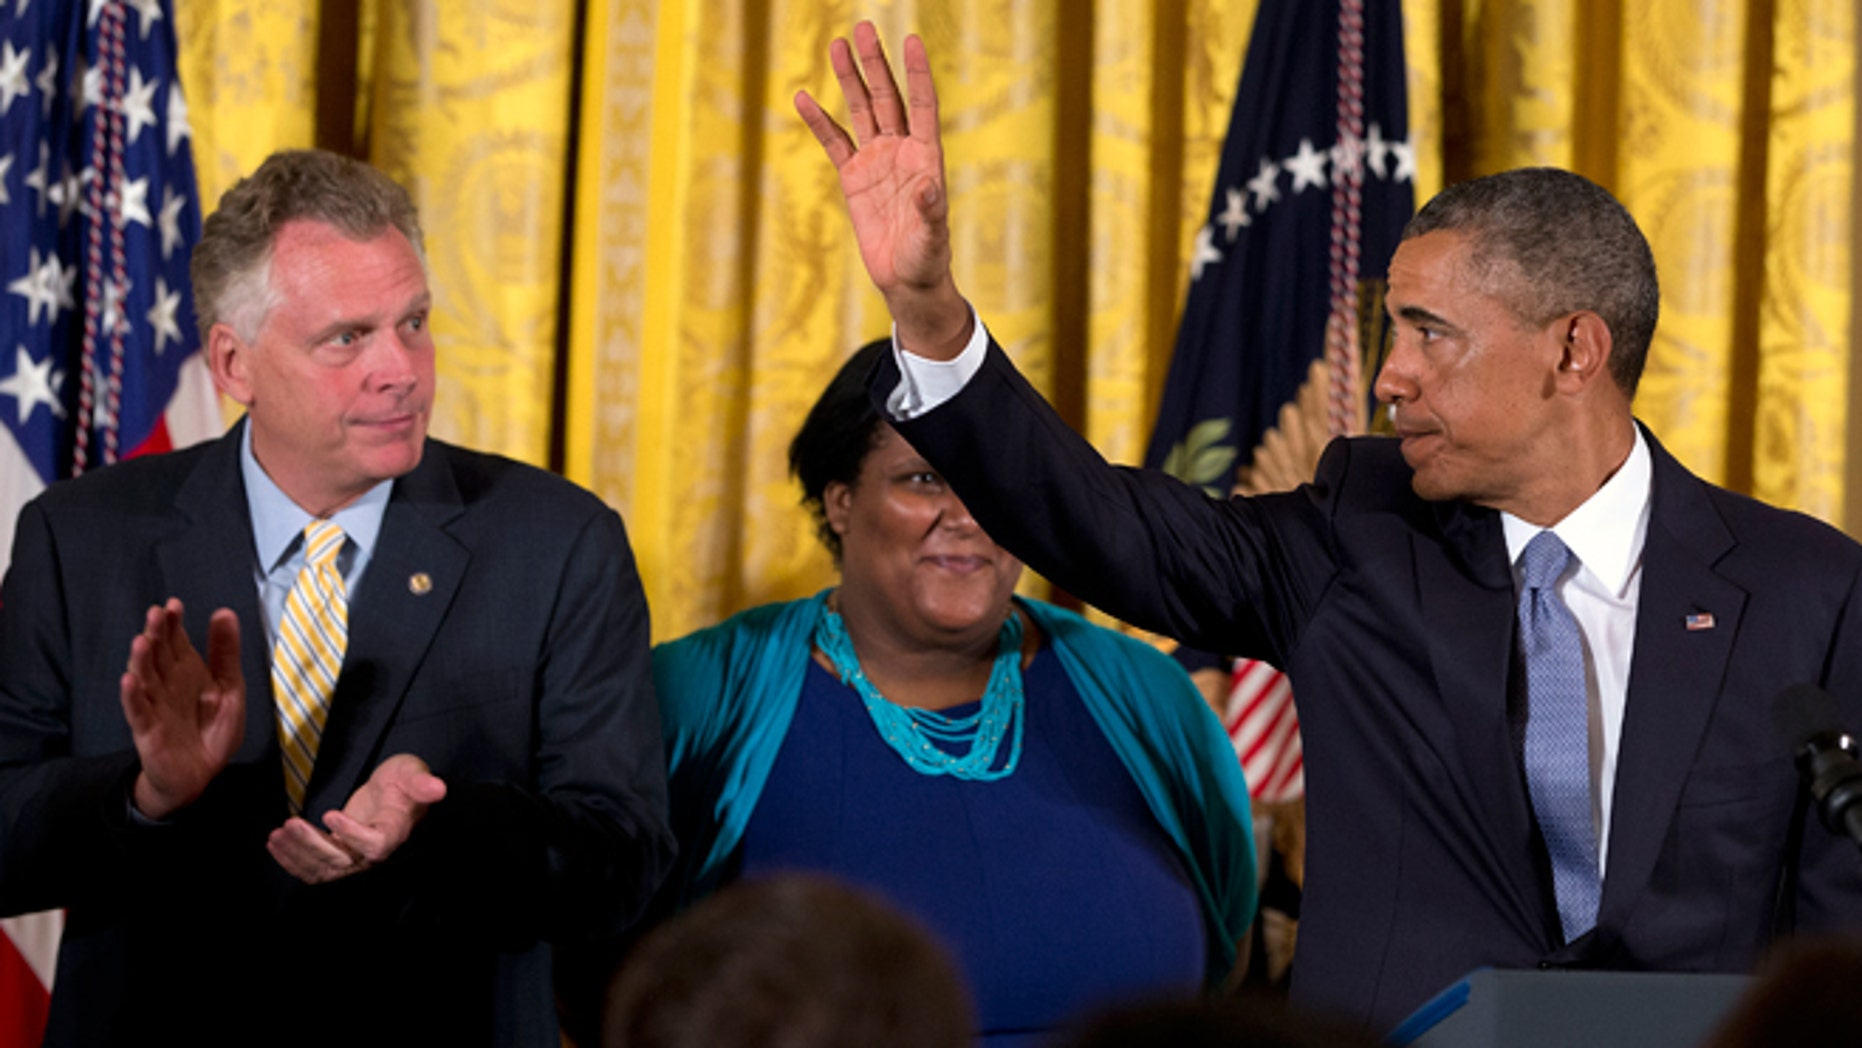 July 21, 2014:  Virginia Governor Terry McAuliffe, left, applauds as President Obama waves after signing an executive order to protect LGBT employees from federal workplace discrimination in the East Room of the White House in Washington. Obama's executive order prohibits discrimination against gay and transgender workers in the federal government and its contracting agencies, without a new exemption that was requested by some religious organizations.